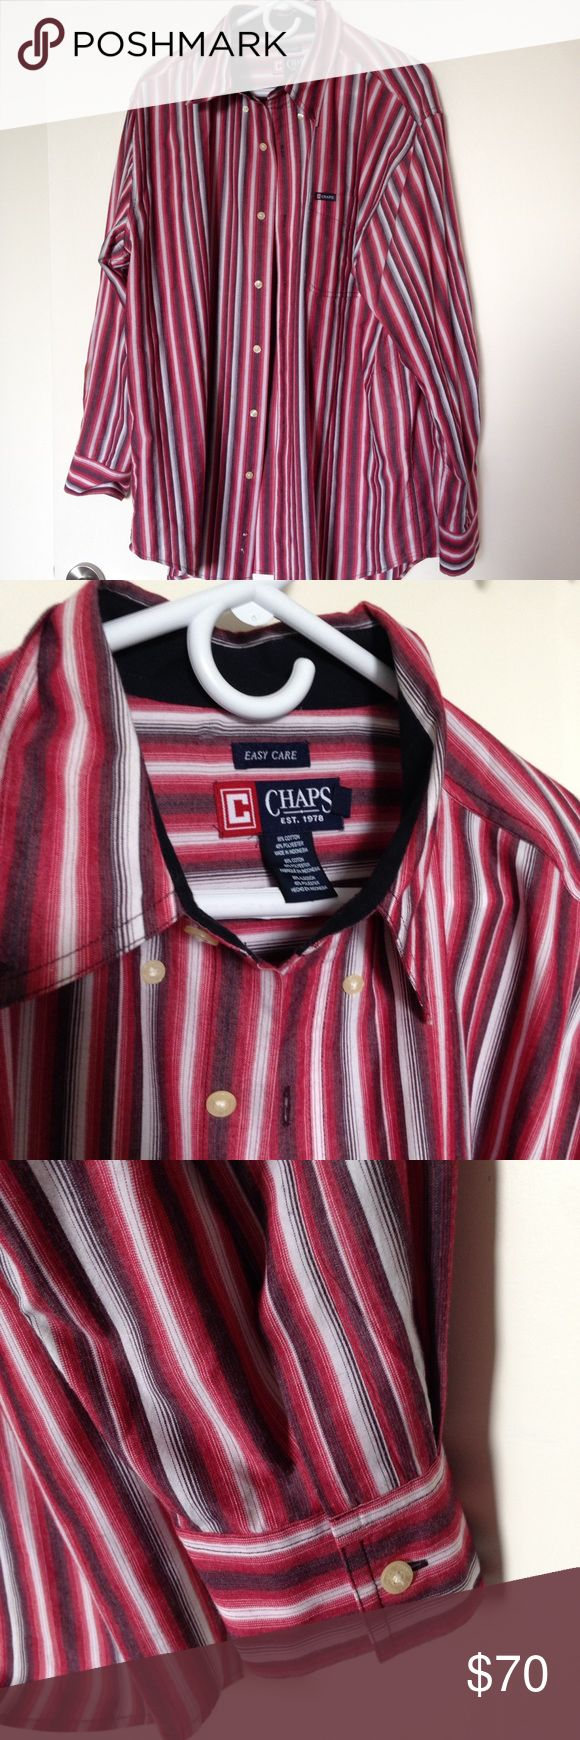 Red, Gray, White Stripped Shirt Hardly worn - in great condition, no damage! 60% cotton 40% polyester. Easy care fabric. Chaps Shirts Casual Button Down Shirts